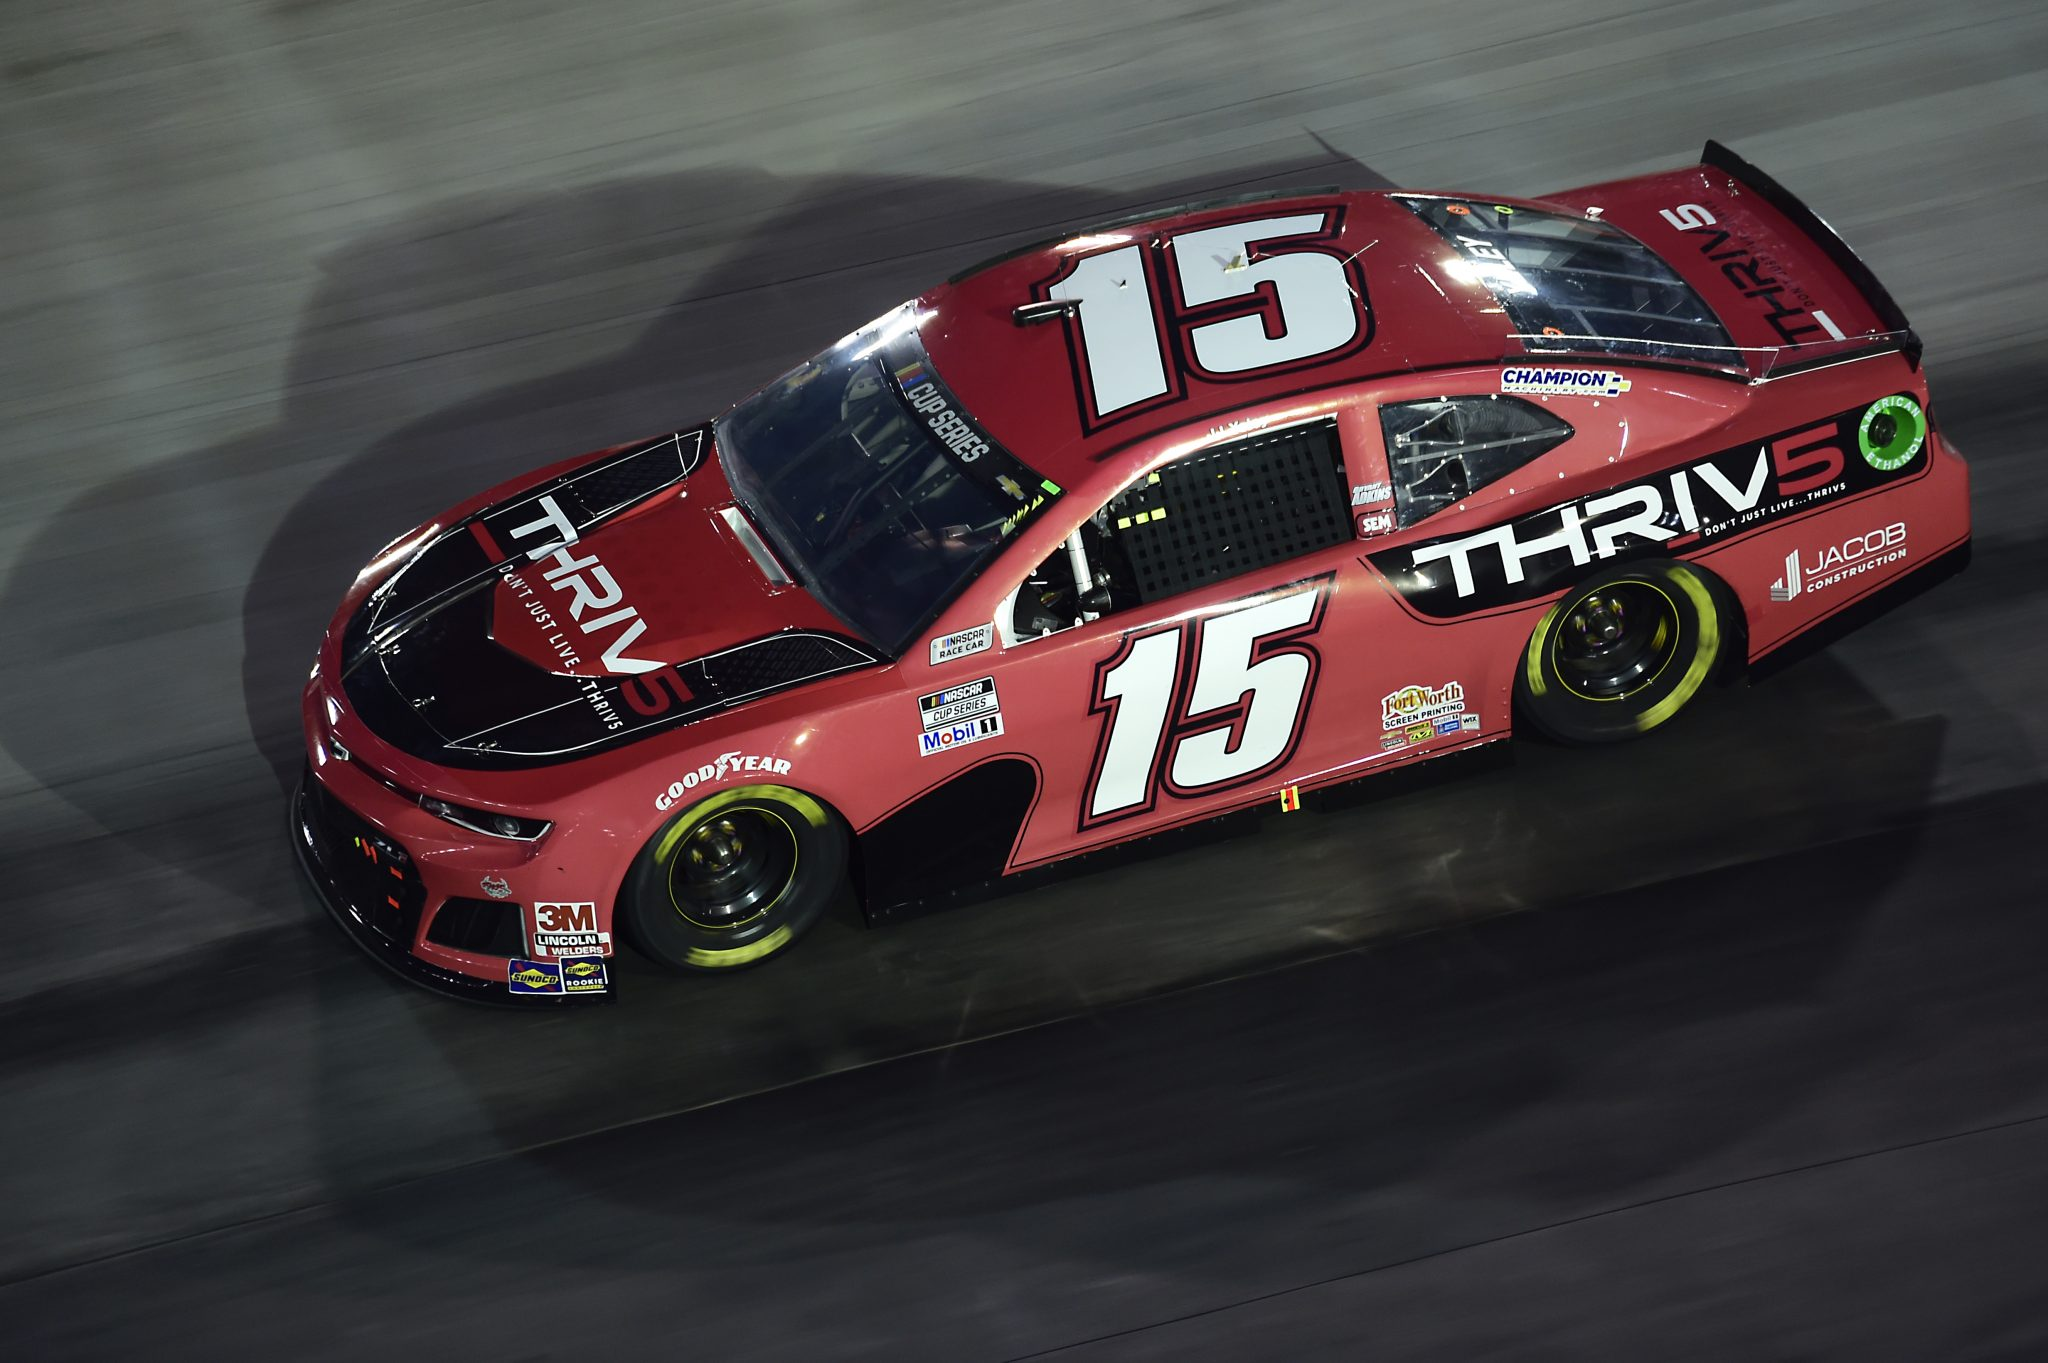 BRISTOL, TENNESSEE - SEPTEMBER 19: Brennan Poole, driver of the #15 Chevrolet, drives during the NASCAR Cup Series Bass Pro Shops Night Race at Bristol Motor Speedway on September 19, 2020 in Bristol, Tennessee. (Photo by Jared C. Tilton/Getty Images) | Getty Images